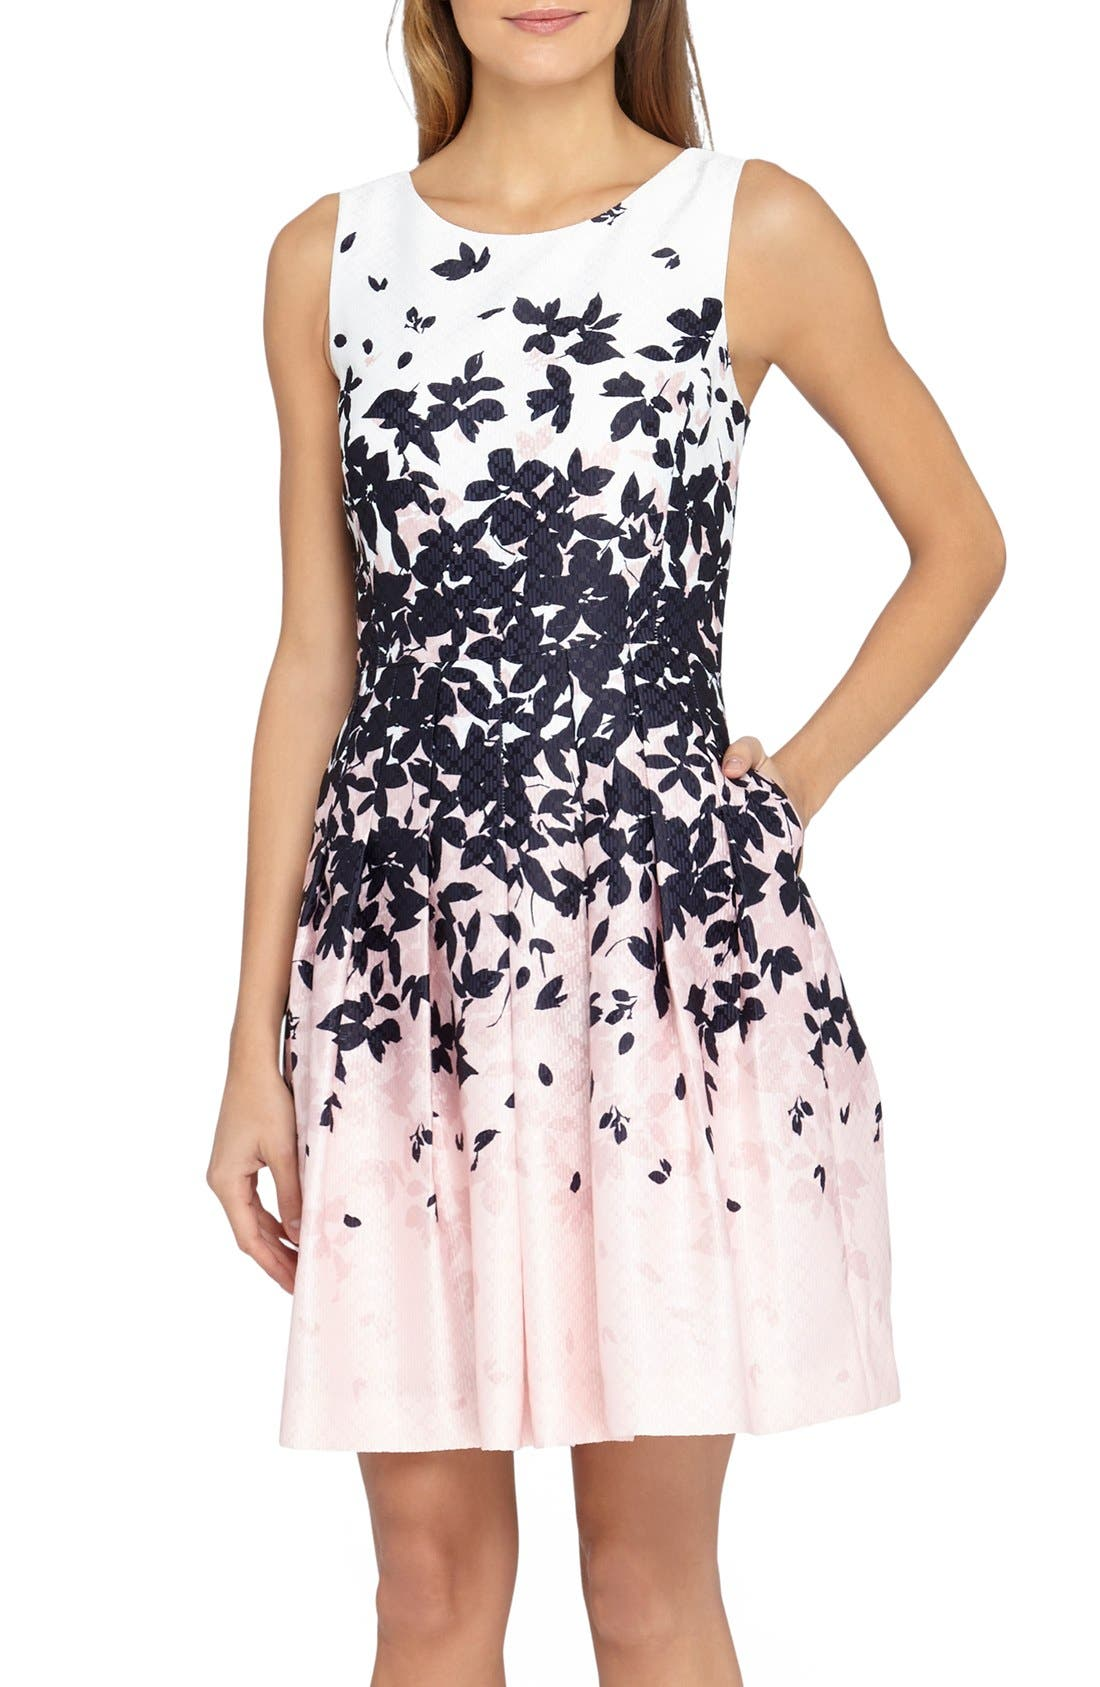 Alternate Image 1 Selected - Tahari Floral Jacquard Fit & Flare Dress (Regular & Petite)